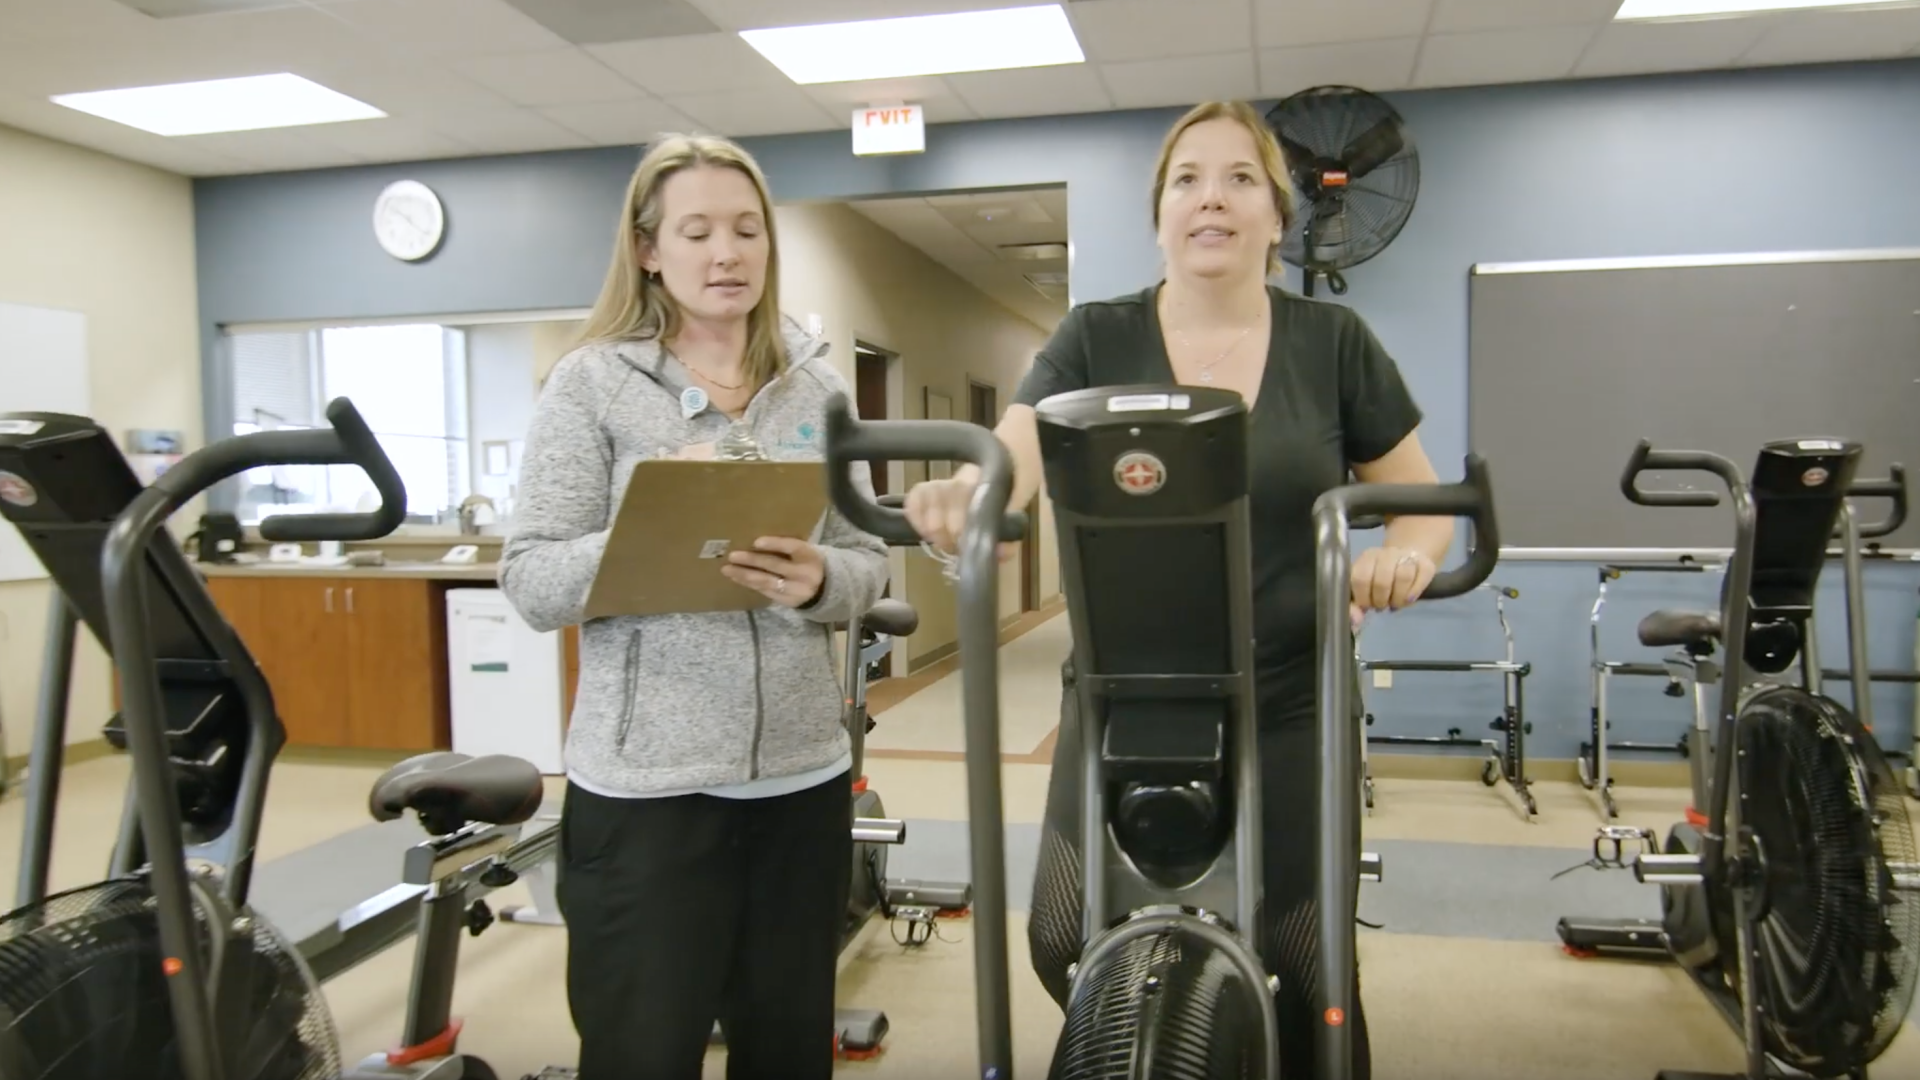 Hava isn't the heart attack victim we picture. She's a healthy eater, a regular exerciser, and only 42 years old. But six weeks after her massive heart attack, Hava tells women that learning the symptoms can save their lives.